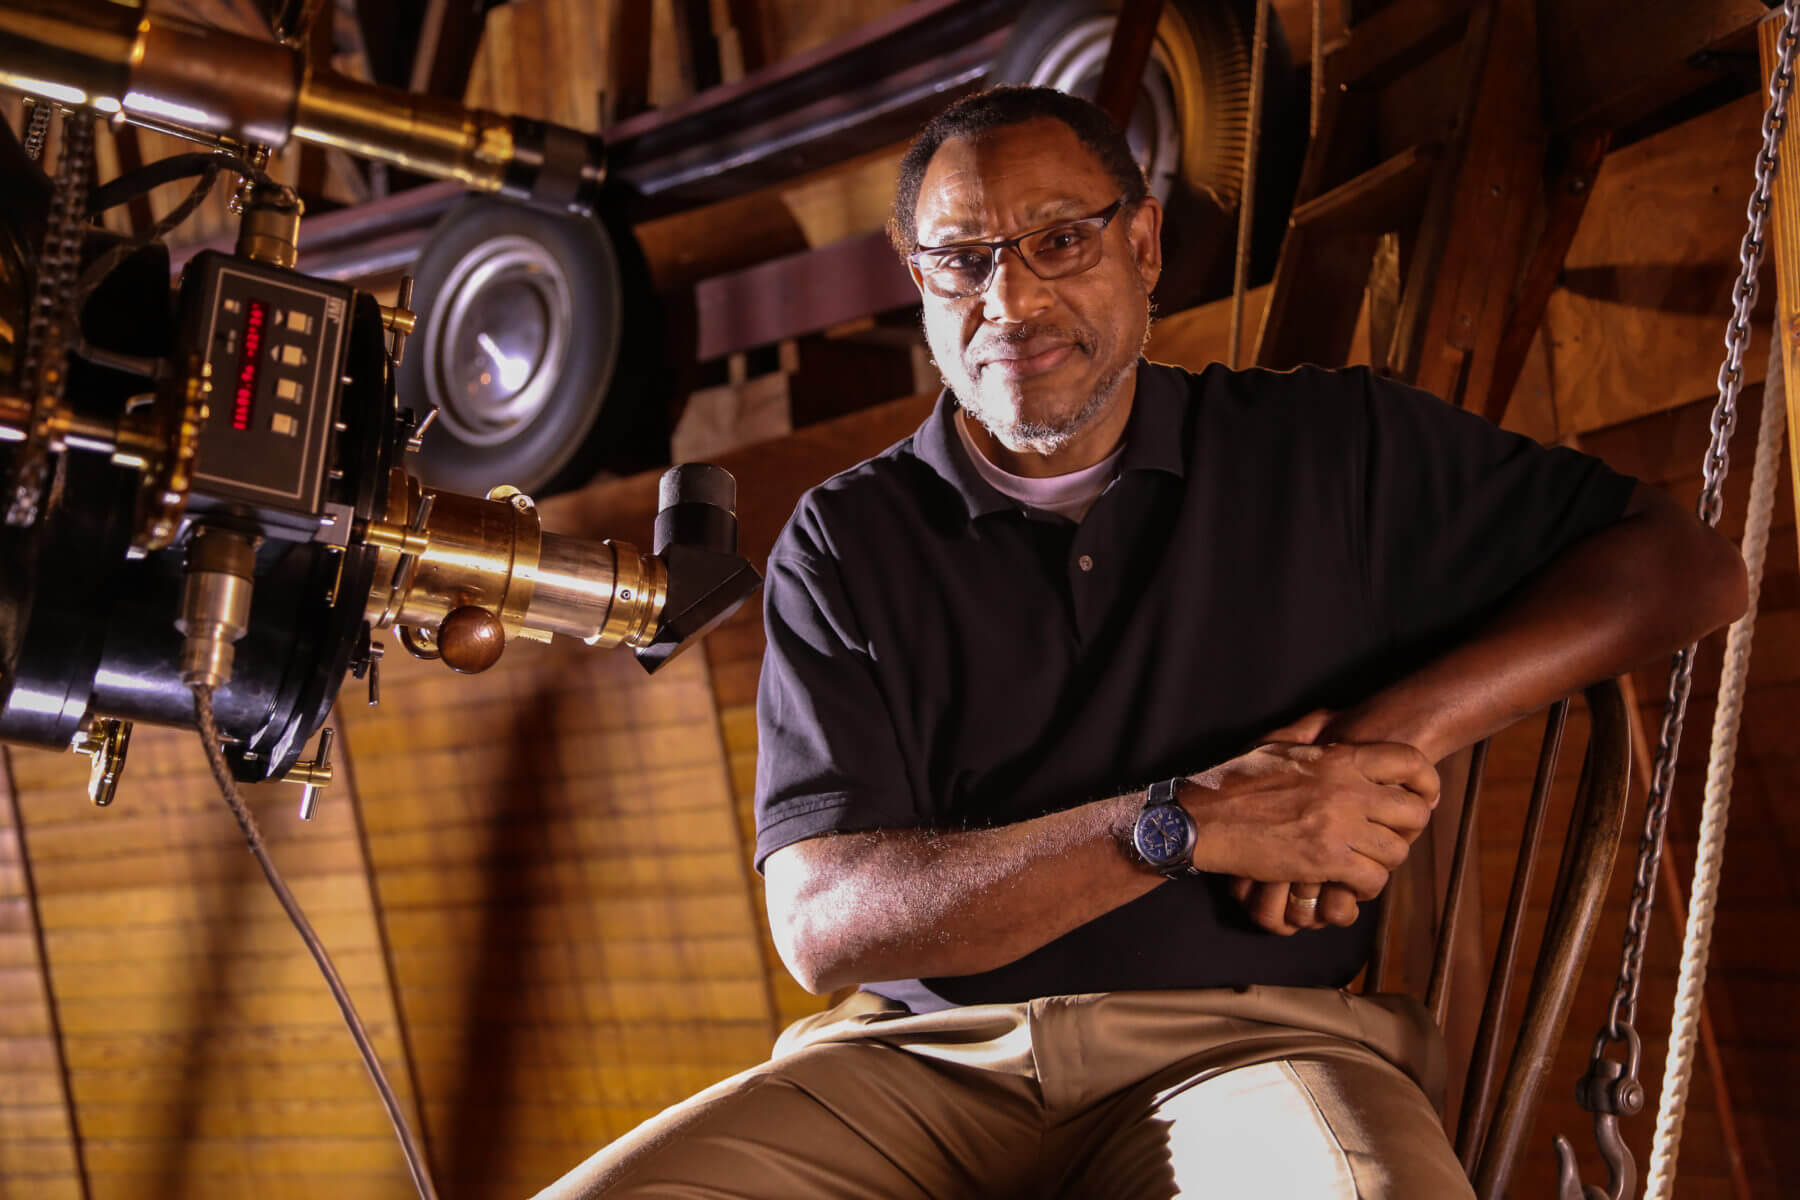 Derrick H. Pitts, Chief Astronomer and Planetarium Director, Franklin Institute Science Museum